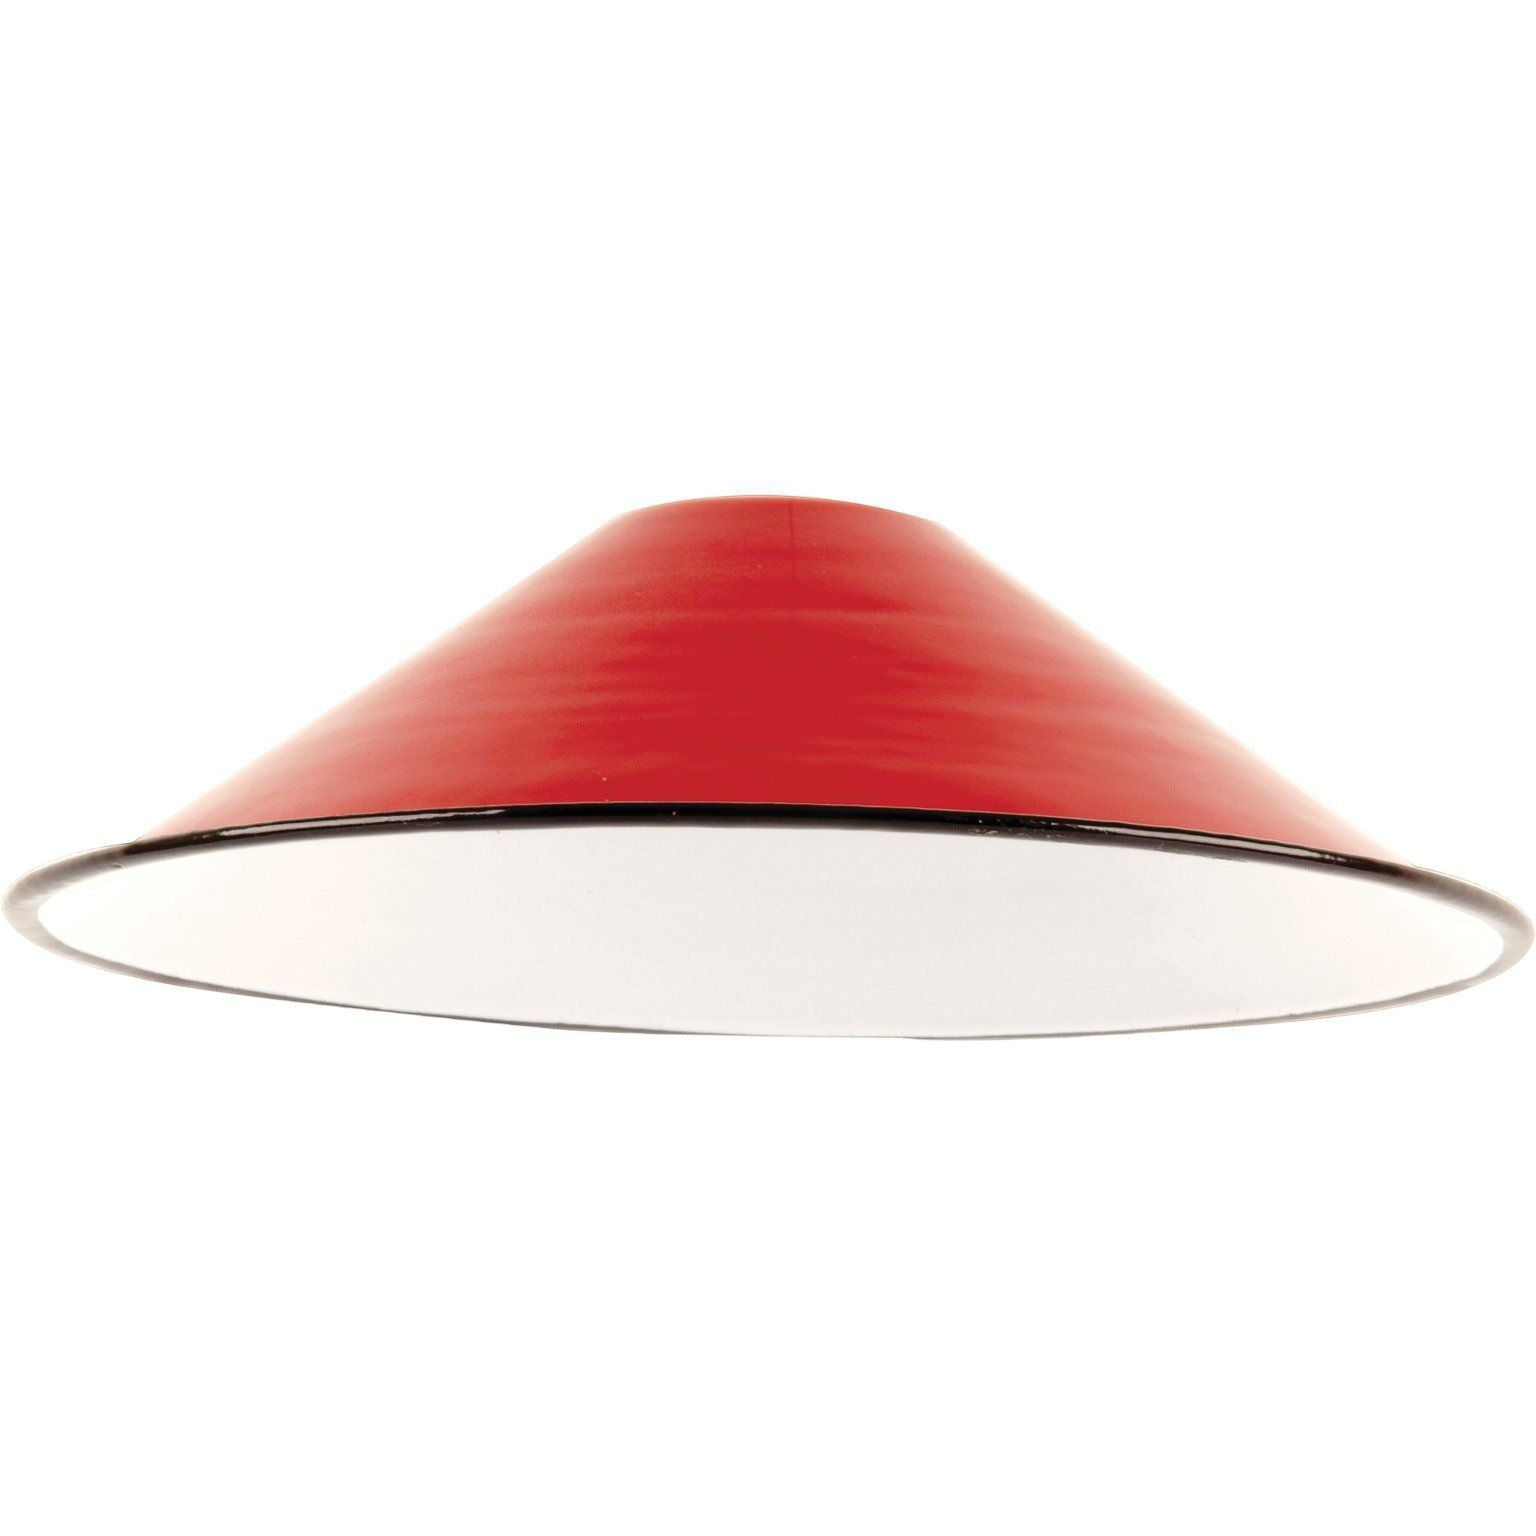 Ian Snow Ltd Red Small Enamel Lampshade